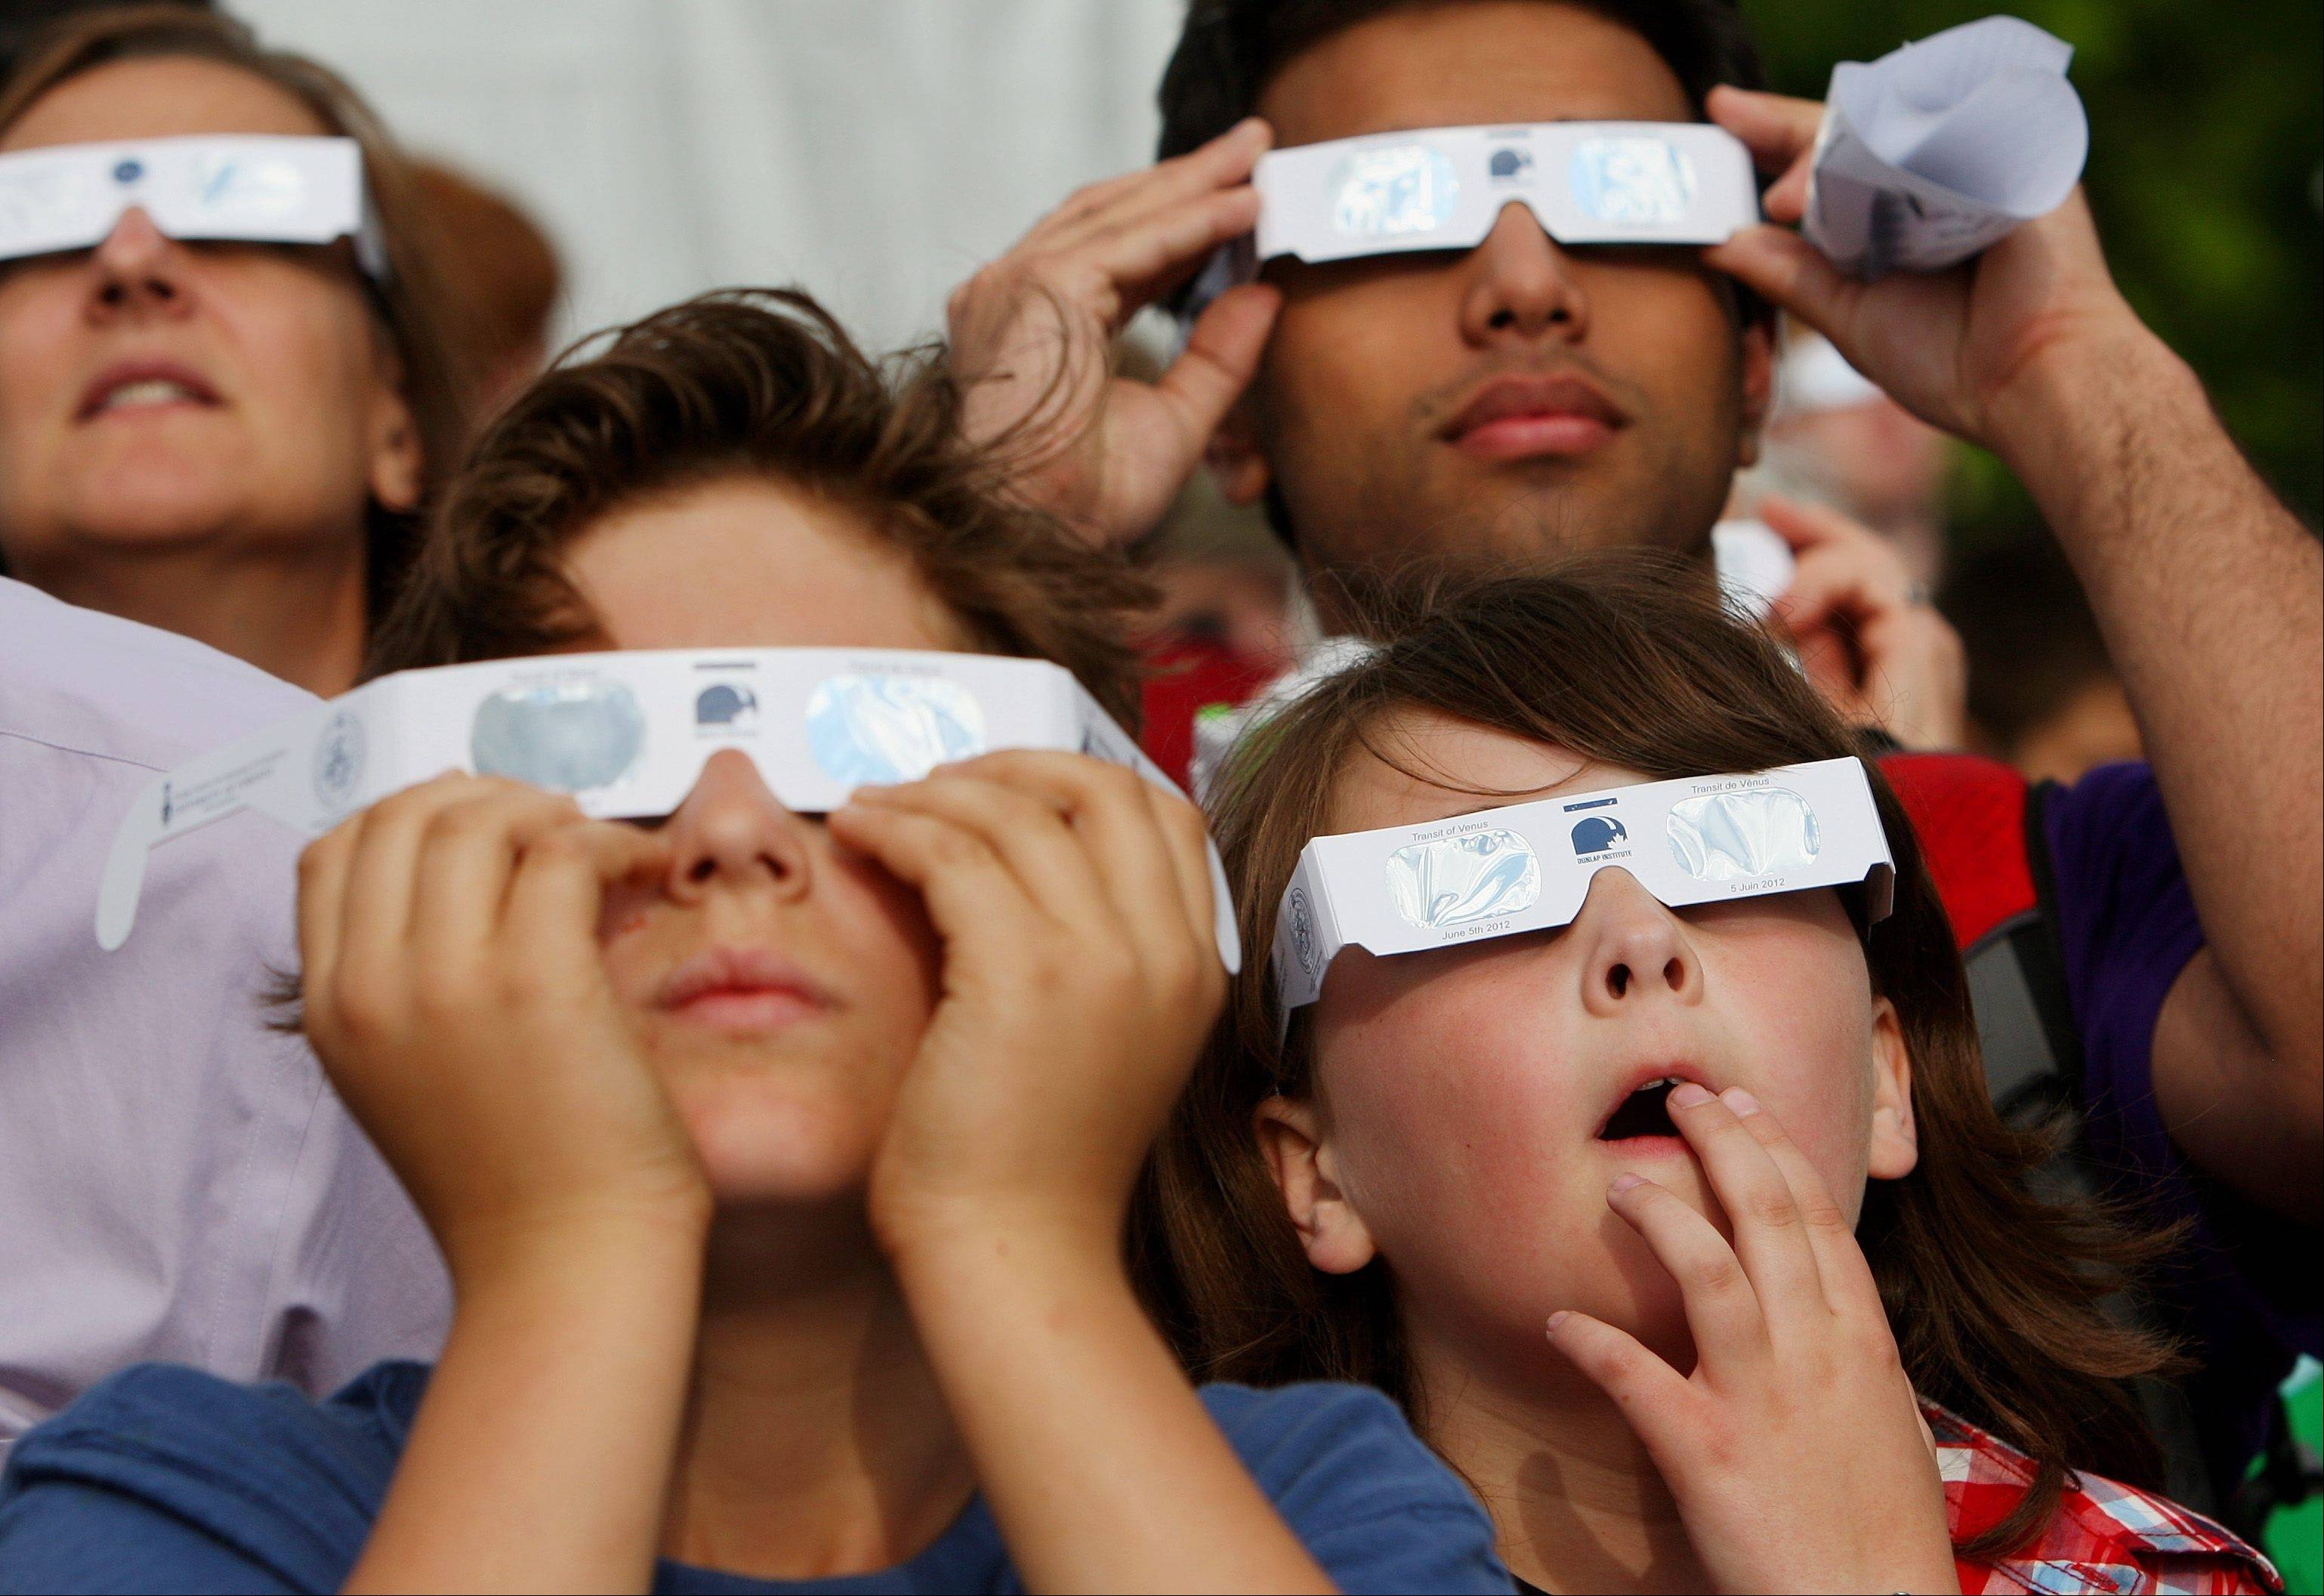 Hundreds of people gather wearing special viewing glasses at the University of Western Ontario in London, Ontario to watch the transit of Venus on Tuesday, June 5, 2012. The rare event occurs when the planet Venus moves in front of the sun. The next time this will occur is in 105 years in 2117.